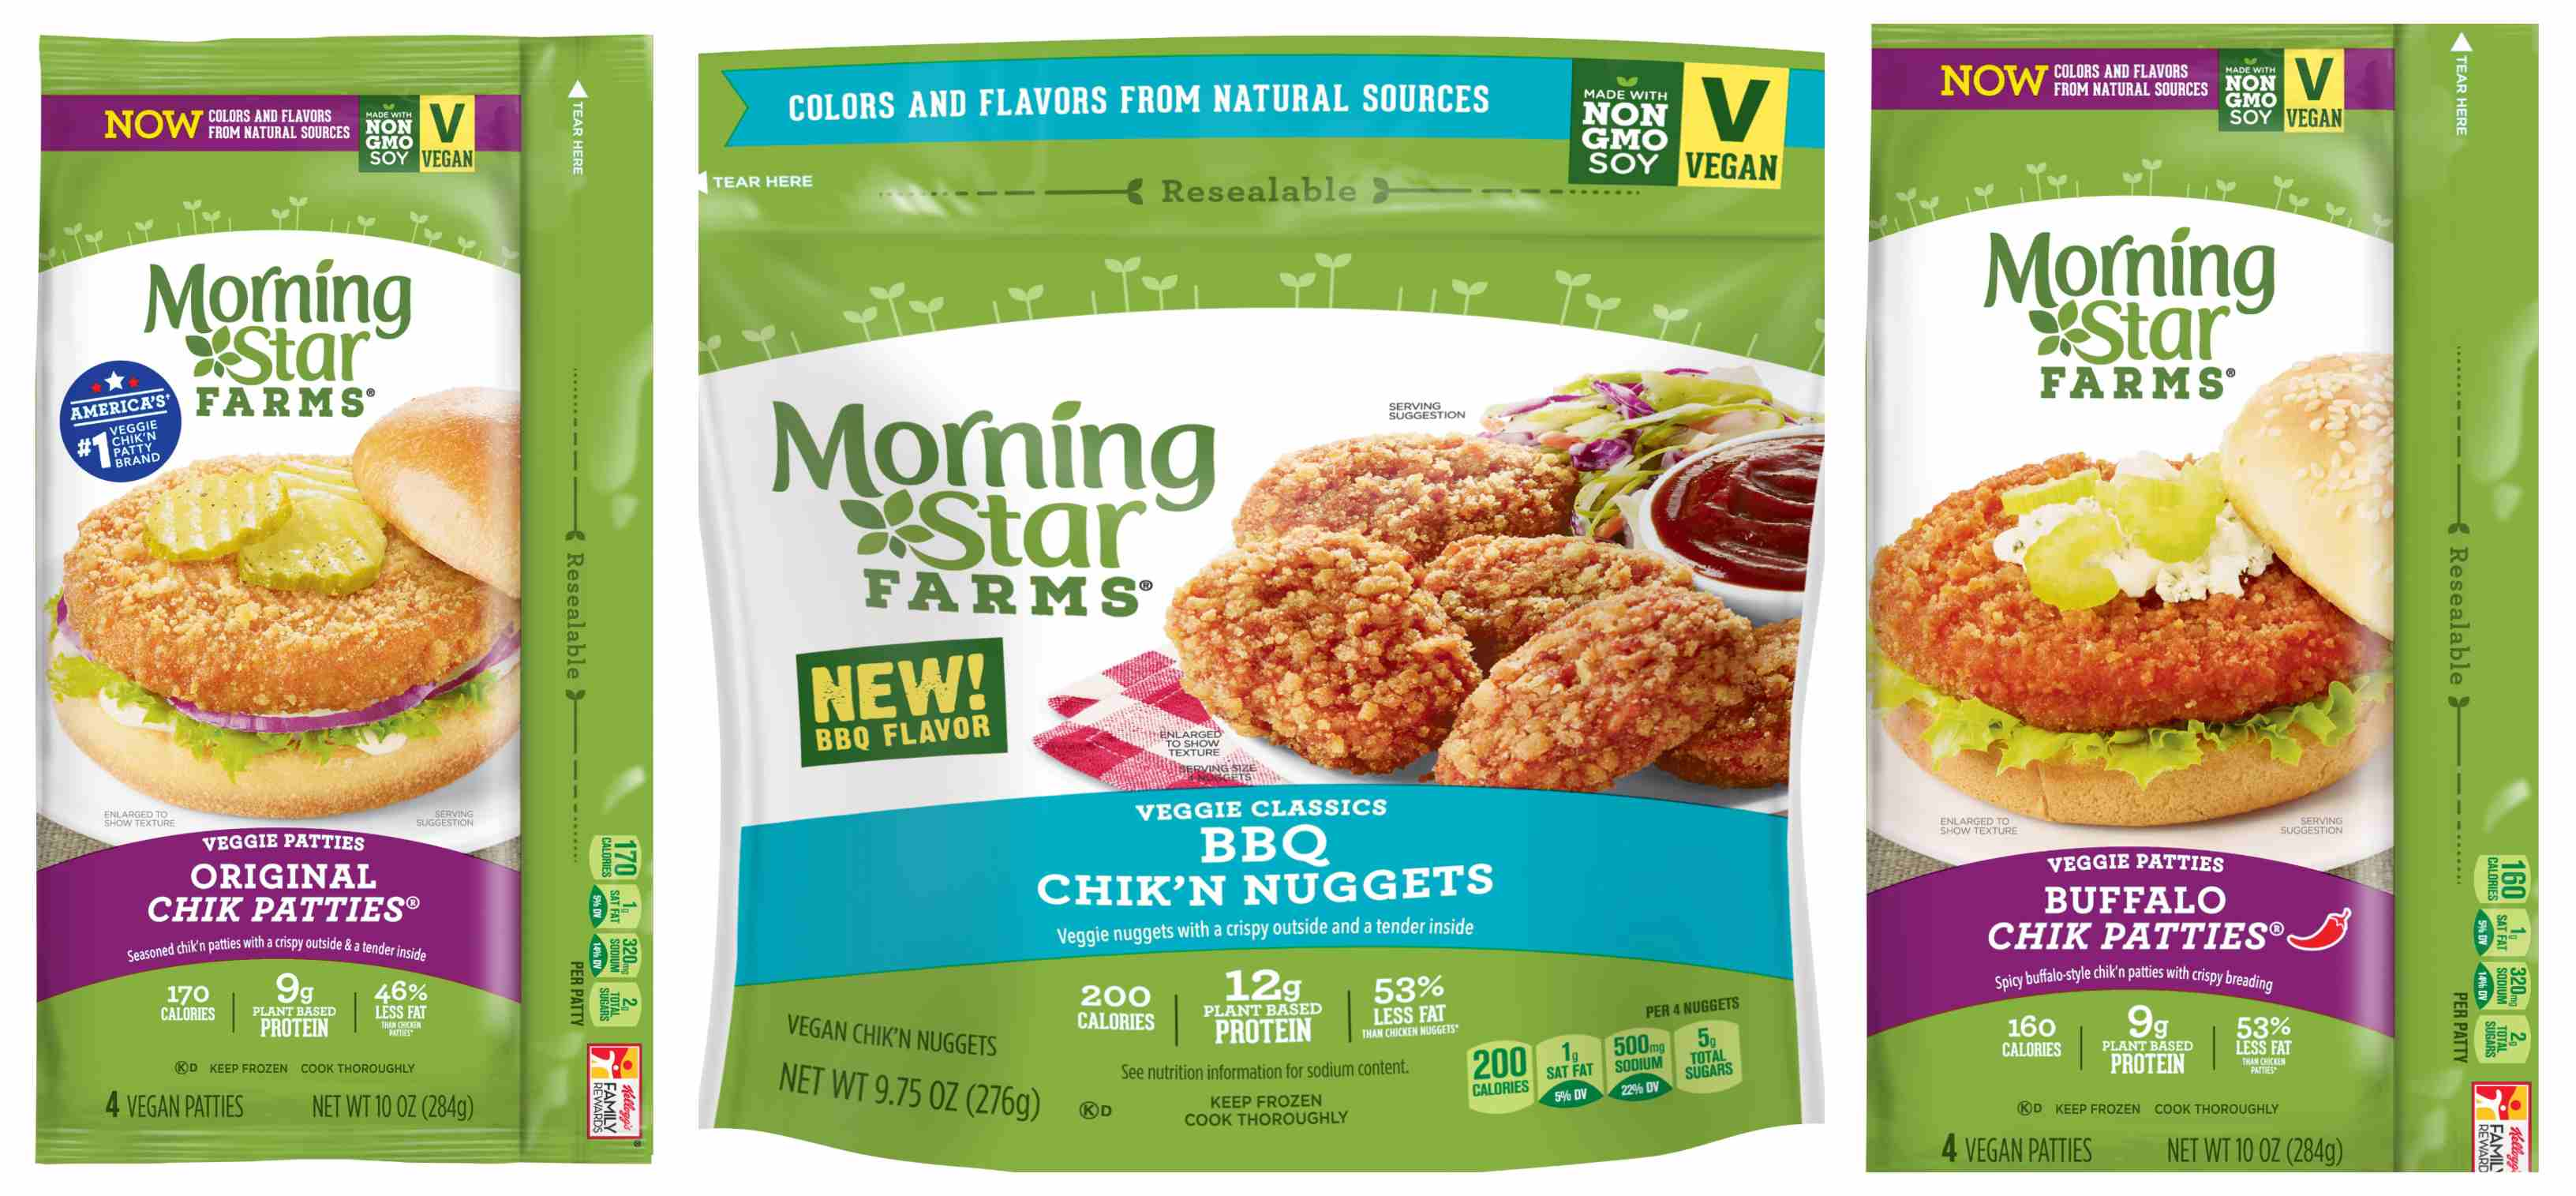 Vegan chicken products from Morningstar farms